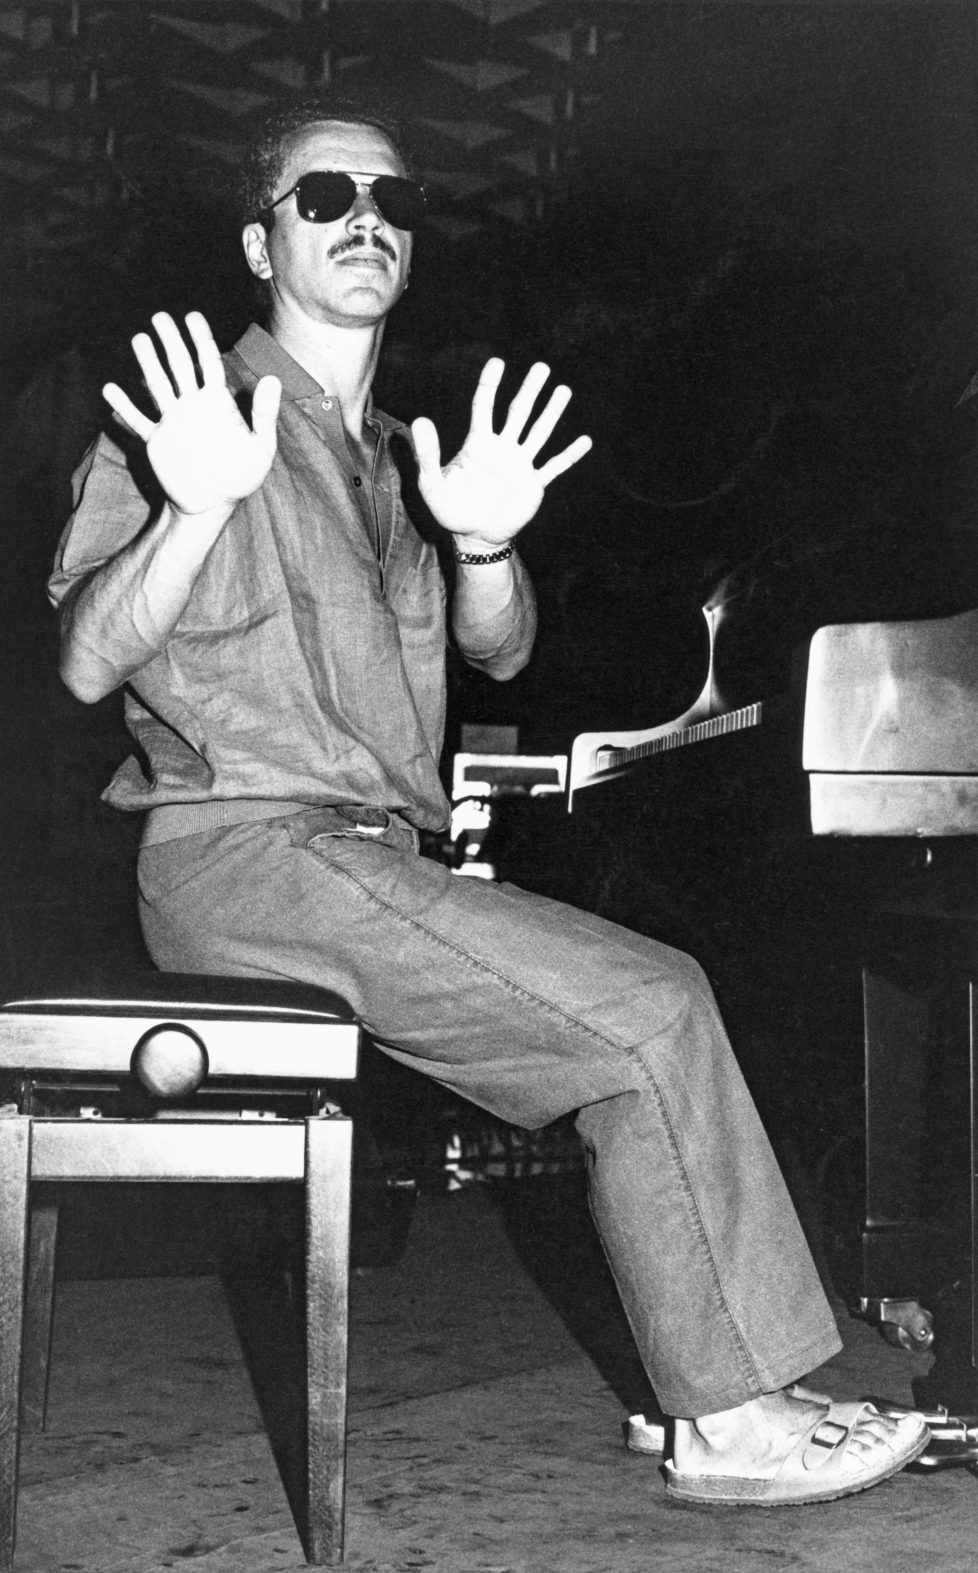 Keith Jarrett, pianist, pictured with a defensive gesture towards photographers, in July of 1985 before his performance at the Montreux Jazz Festival. (KEYSTONE/Dany Gignoux) Keith Jarrett, Pianist, mit einer abwehrenden Geste gegenueber Fotografen, die ihn fotoagrafieren wollen, aufgenommen im Juli 1985 vor seinem Auftritt am Montreux Jazz Festival. (KEYSTONE/Dany Gignoux)